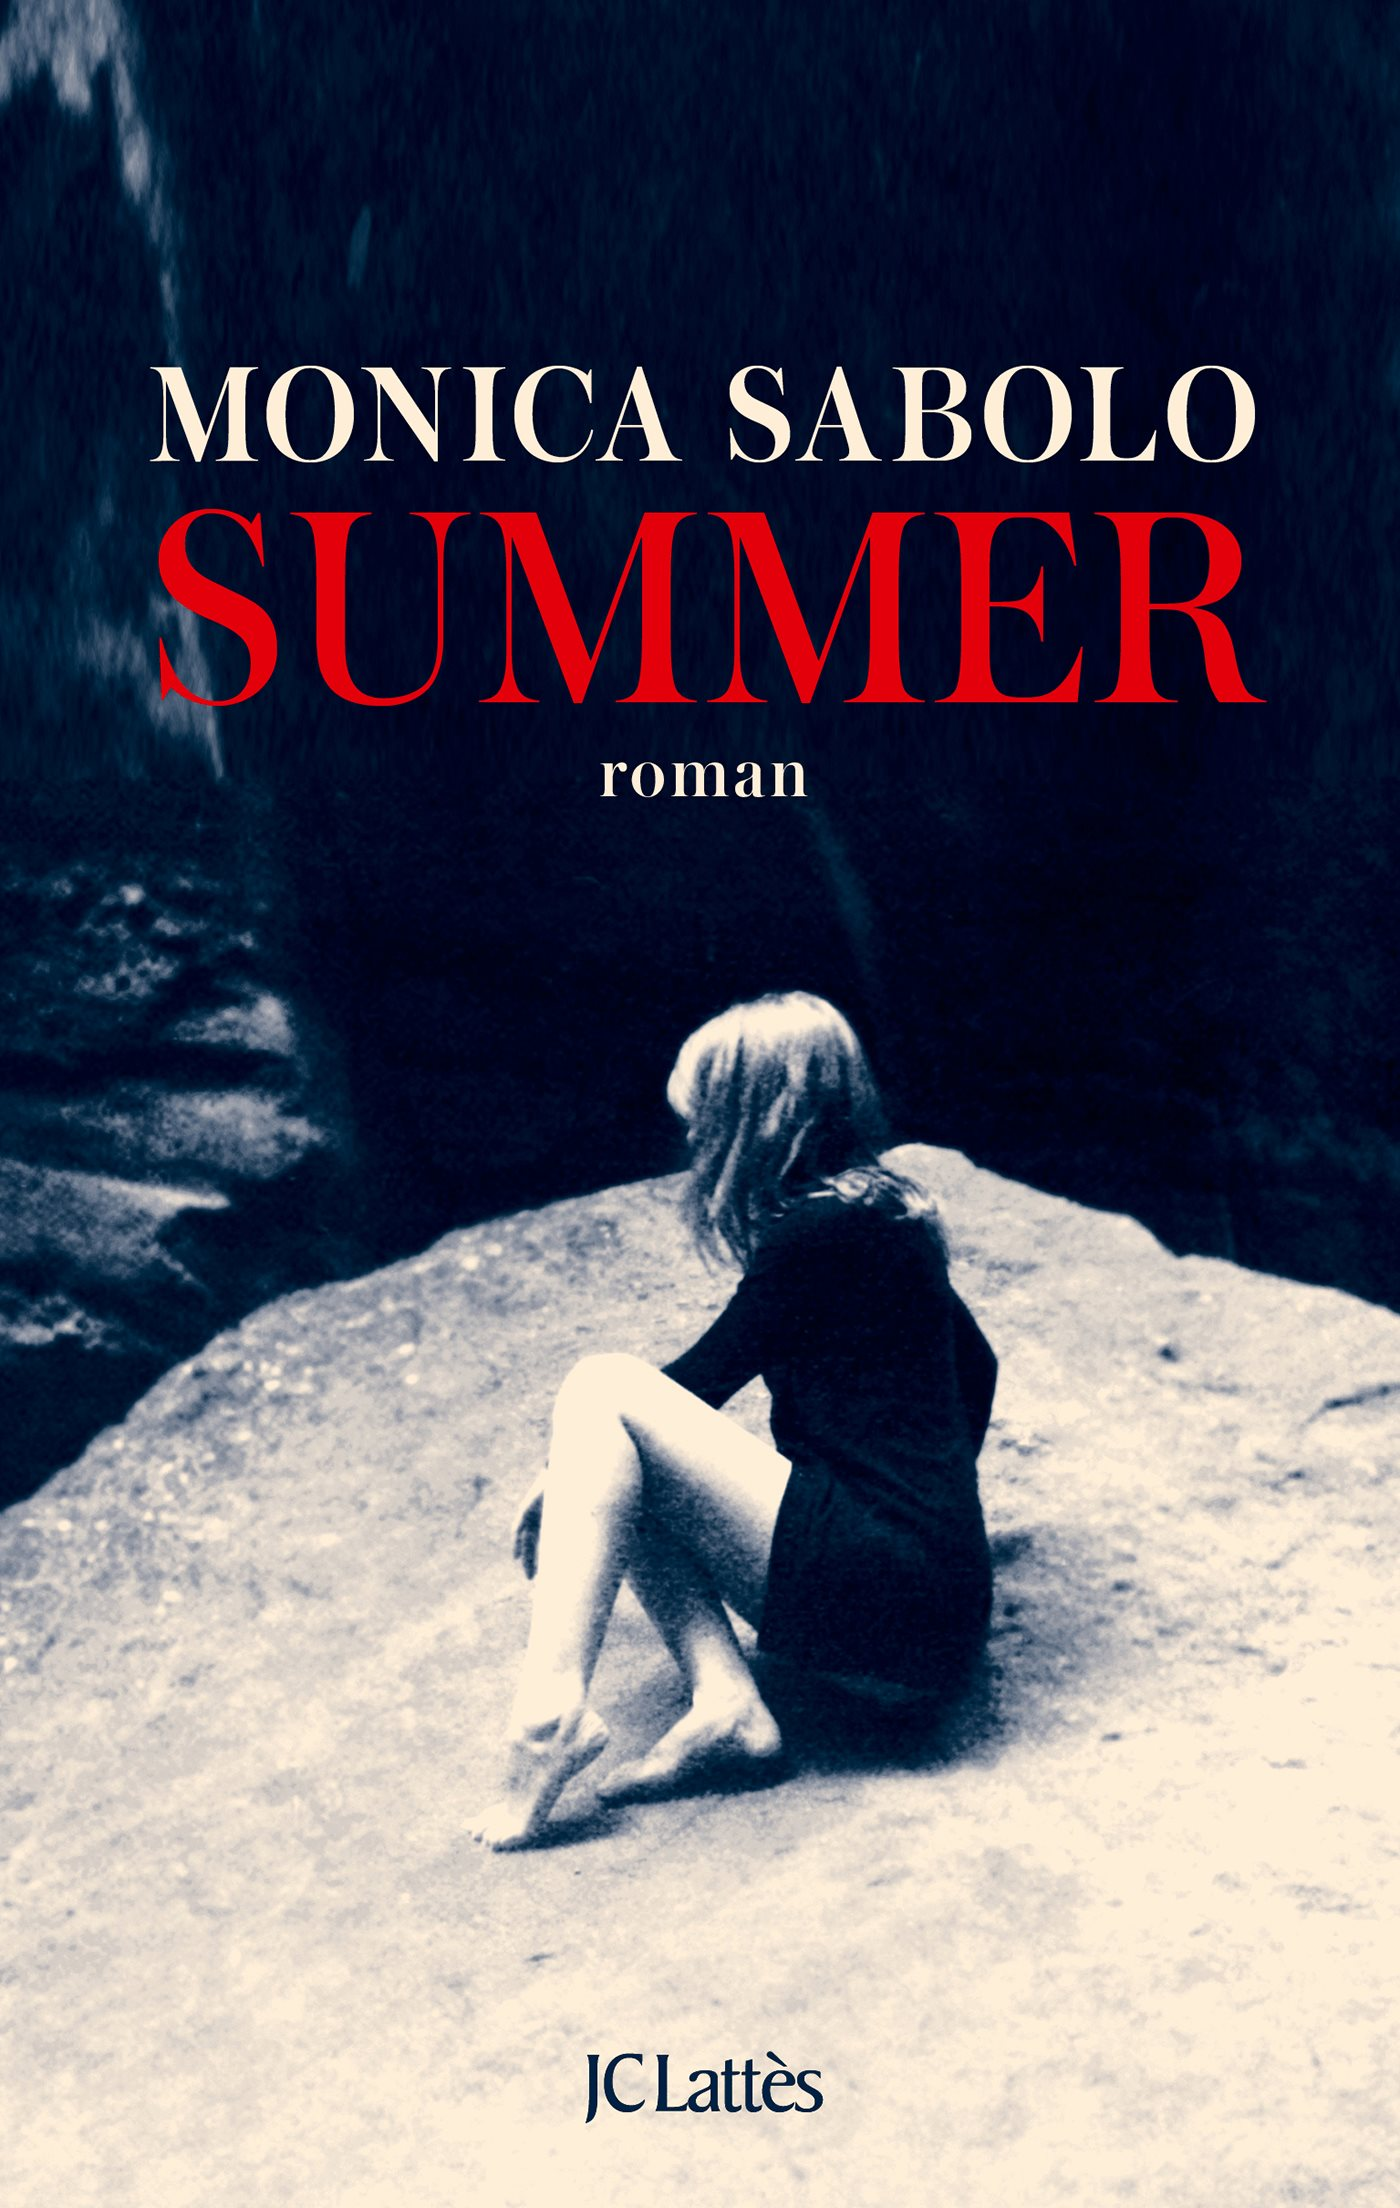 Couverture : Monica Sabolo, Summer, JC Lattès